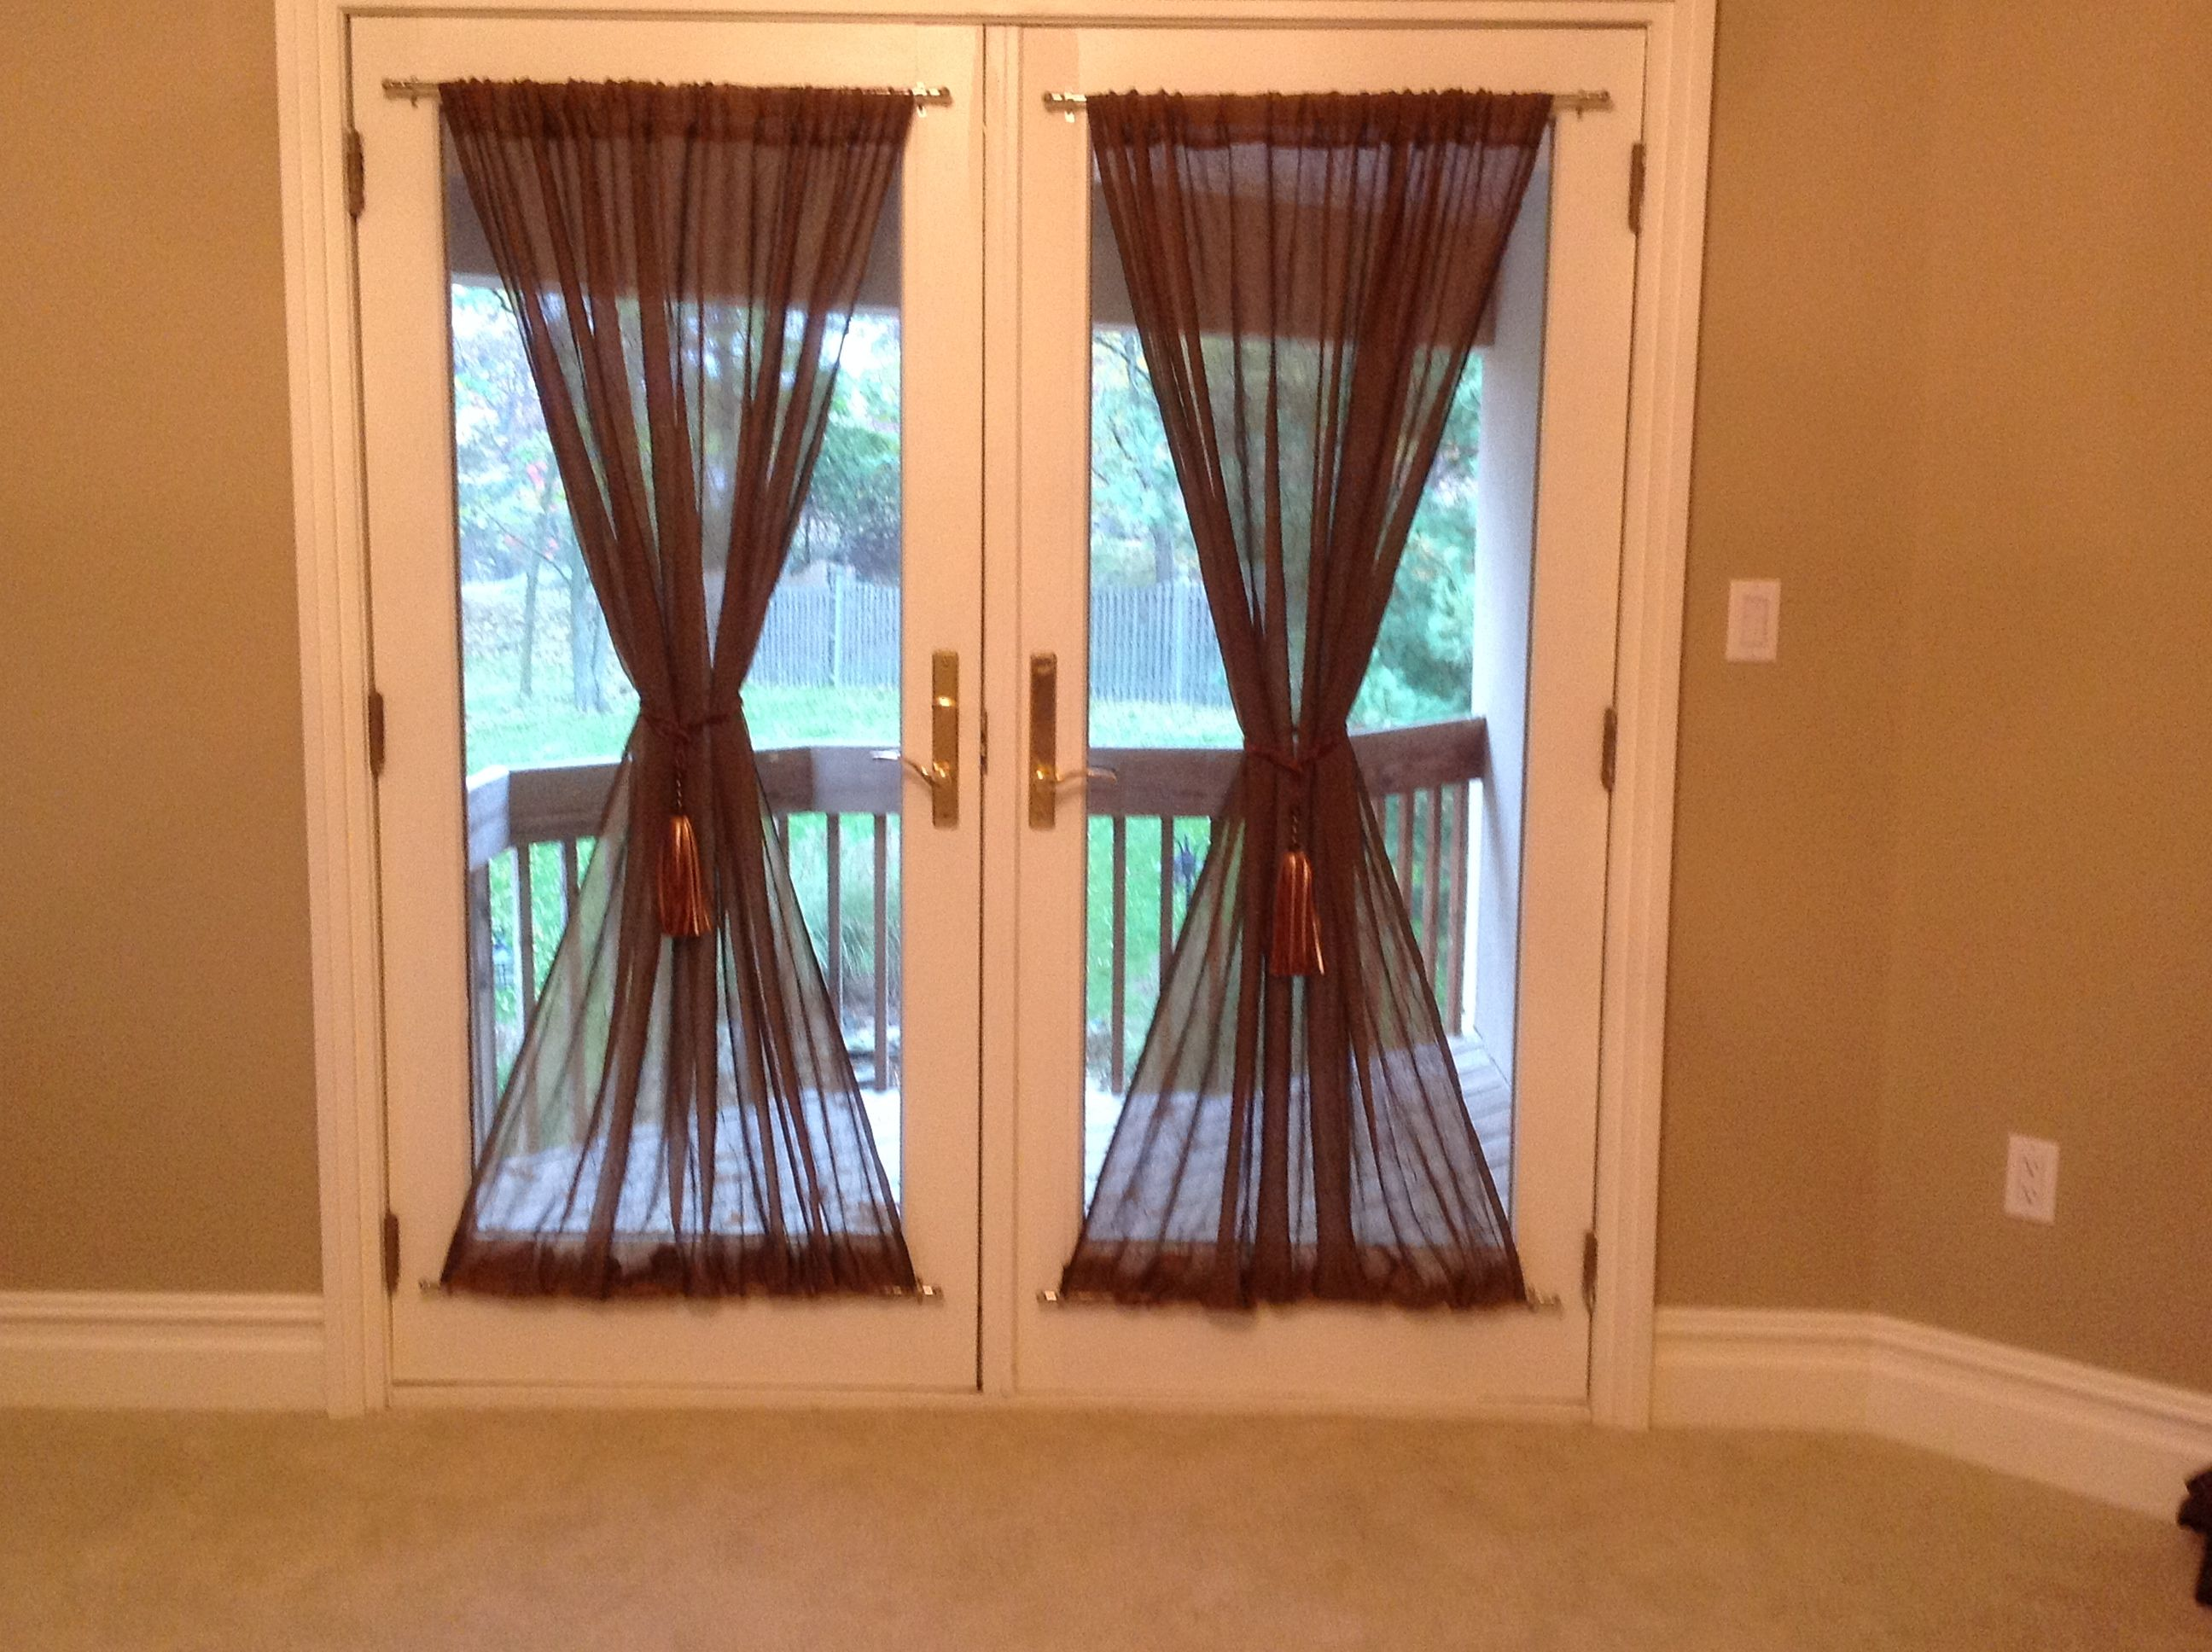 Diy French door curtains | Fun and easy DIY projects | Pinterest ...